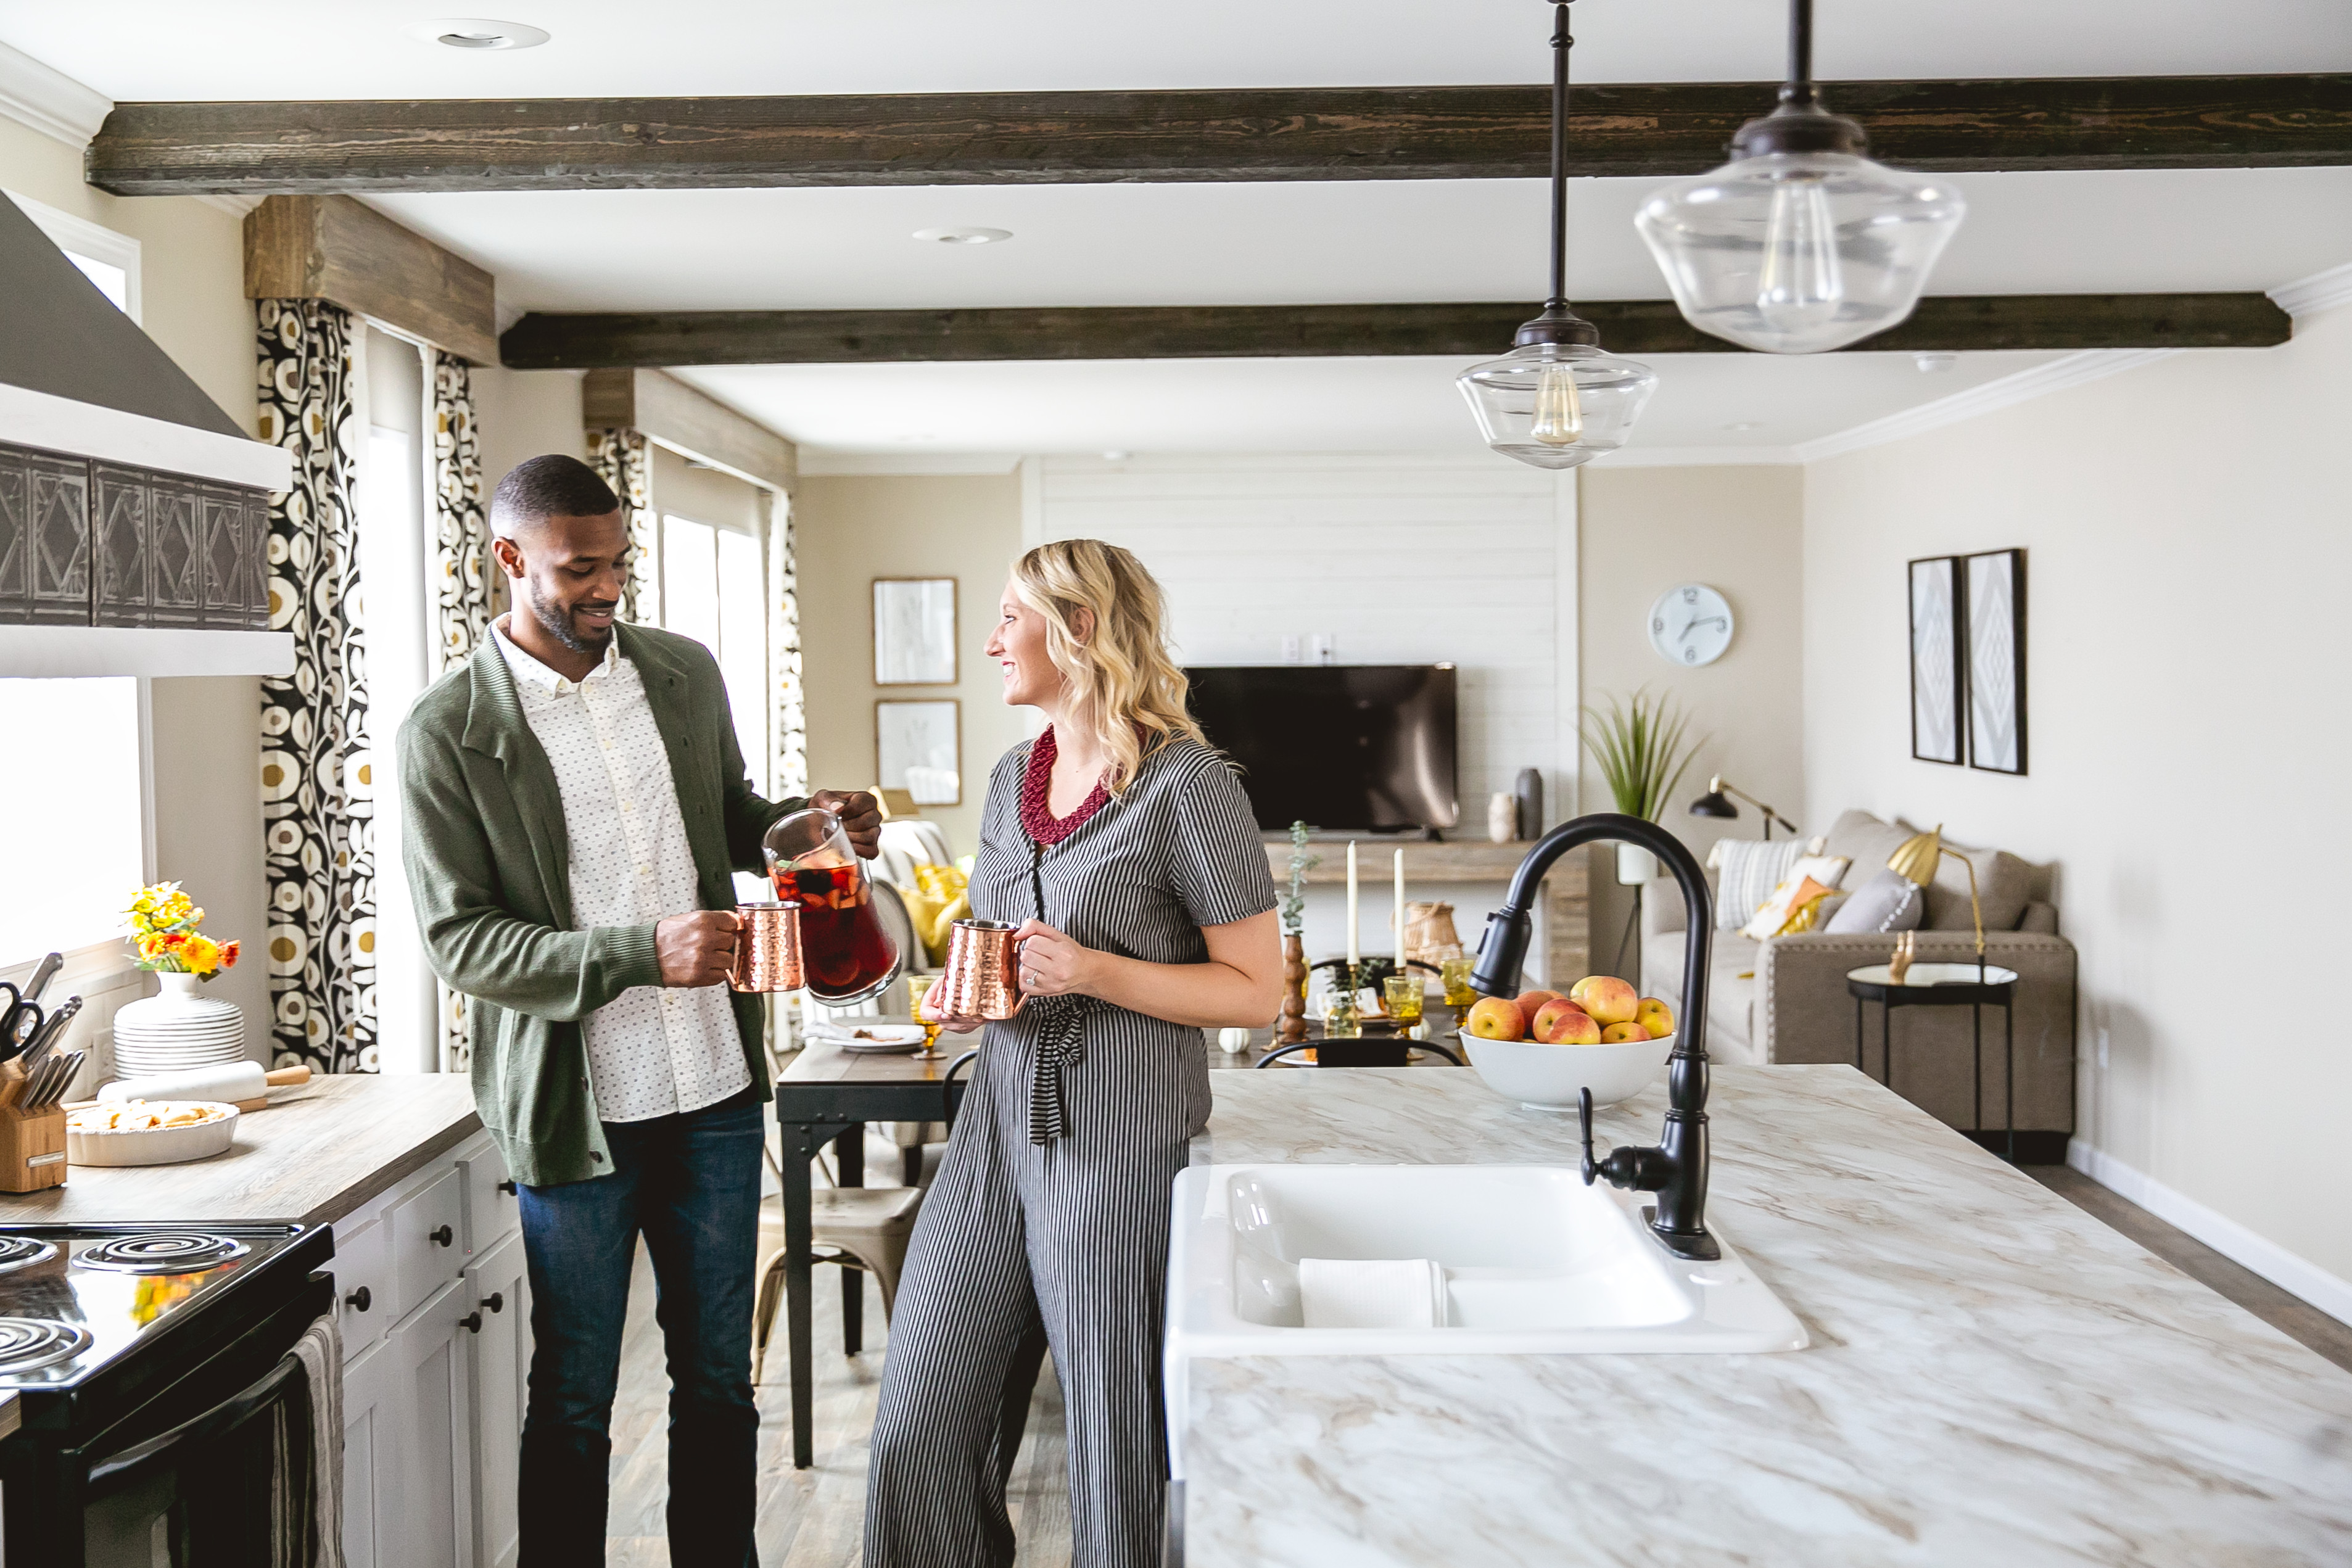 A man and woman stand in the kitchen of a new manufactured home, drinking and smiling.